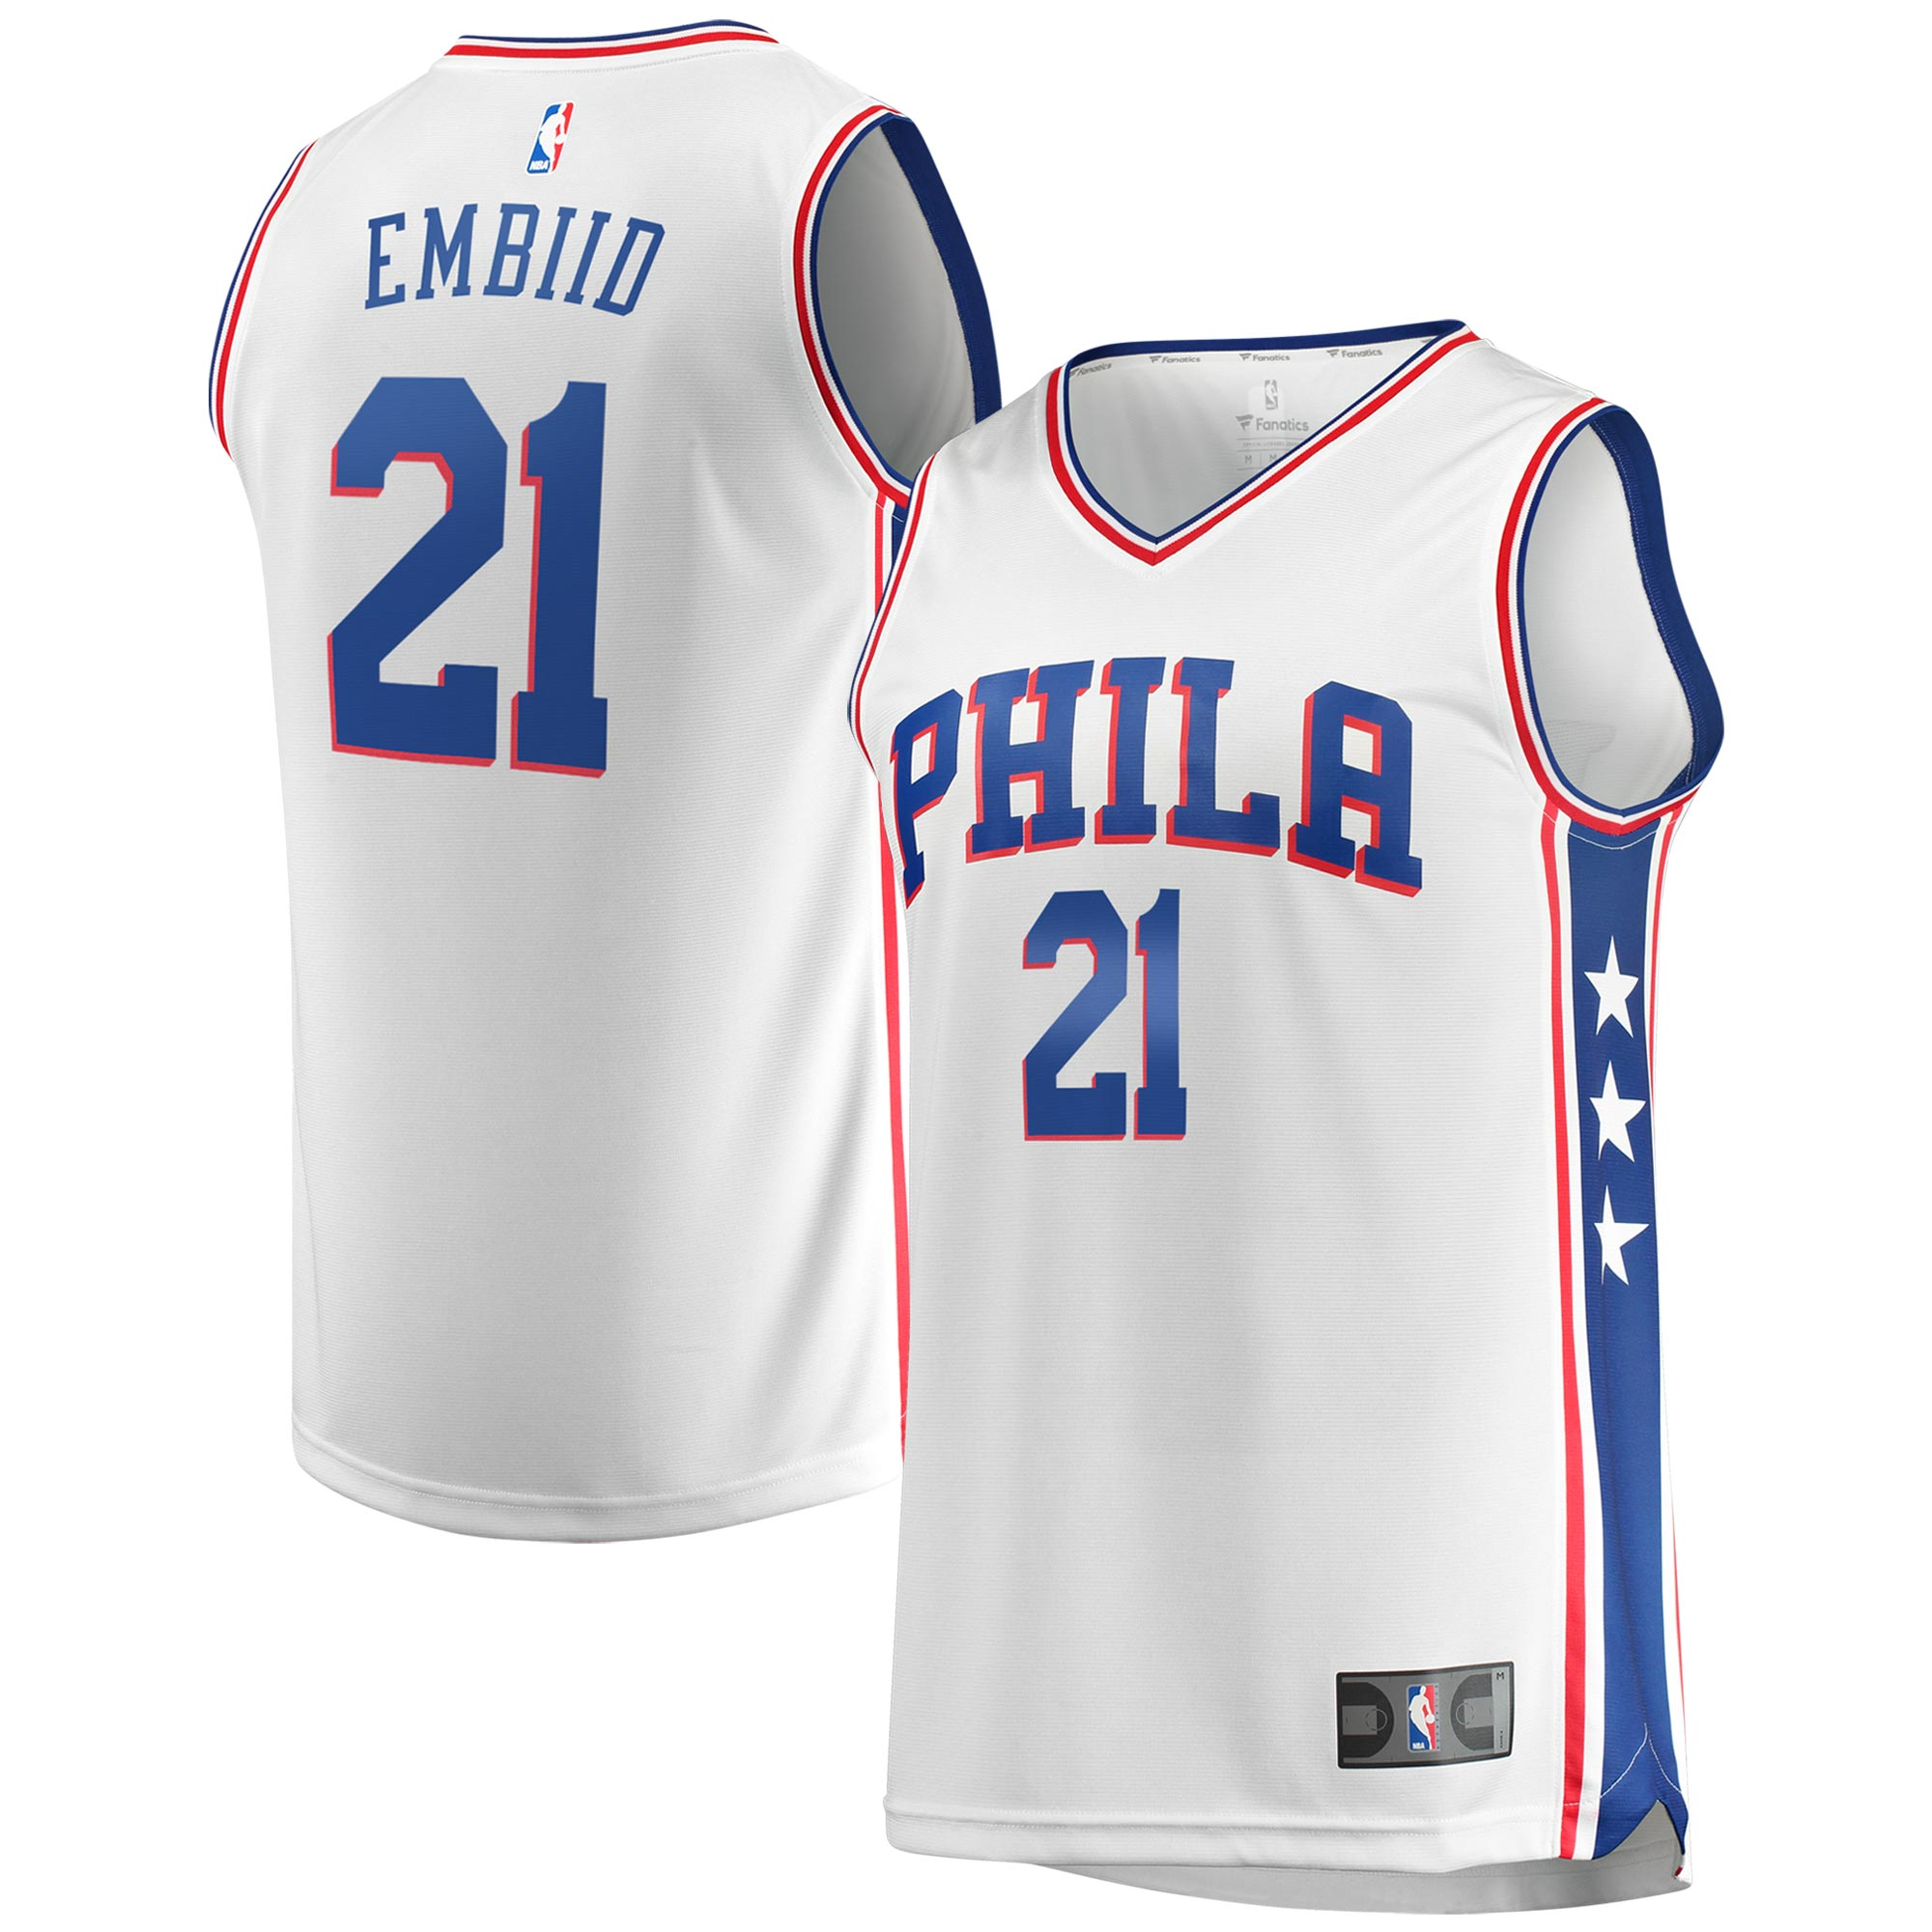 Joel Embiid Philadelphia 76ers Fanatics Branded Youth Fast Break Replica Jersey White - Association Edition